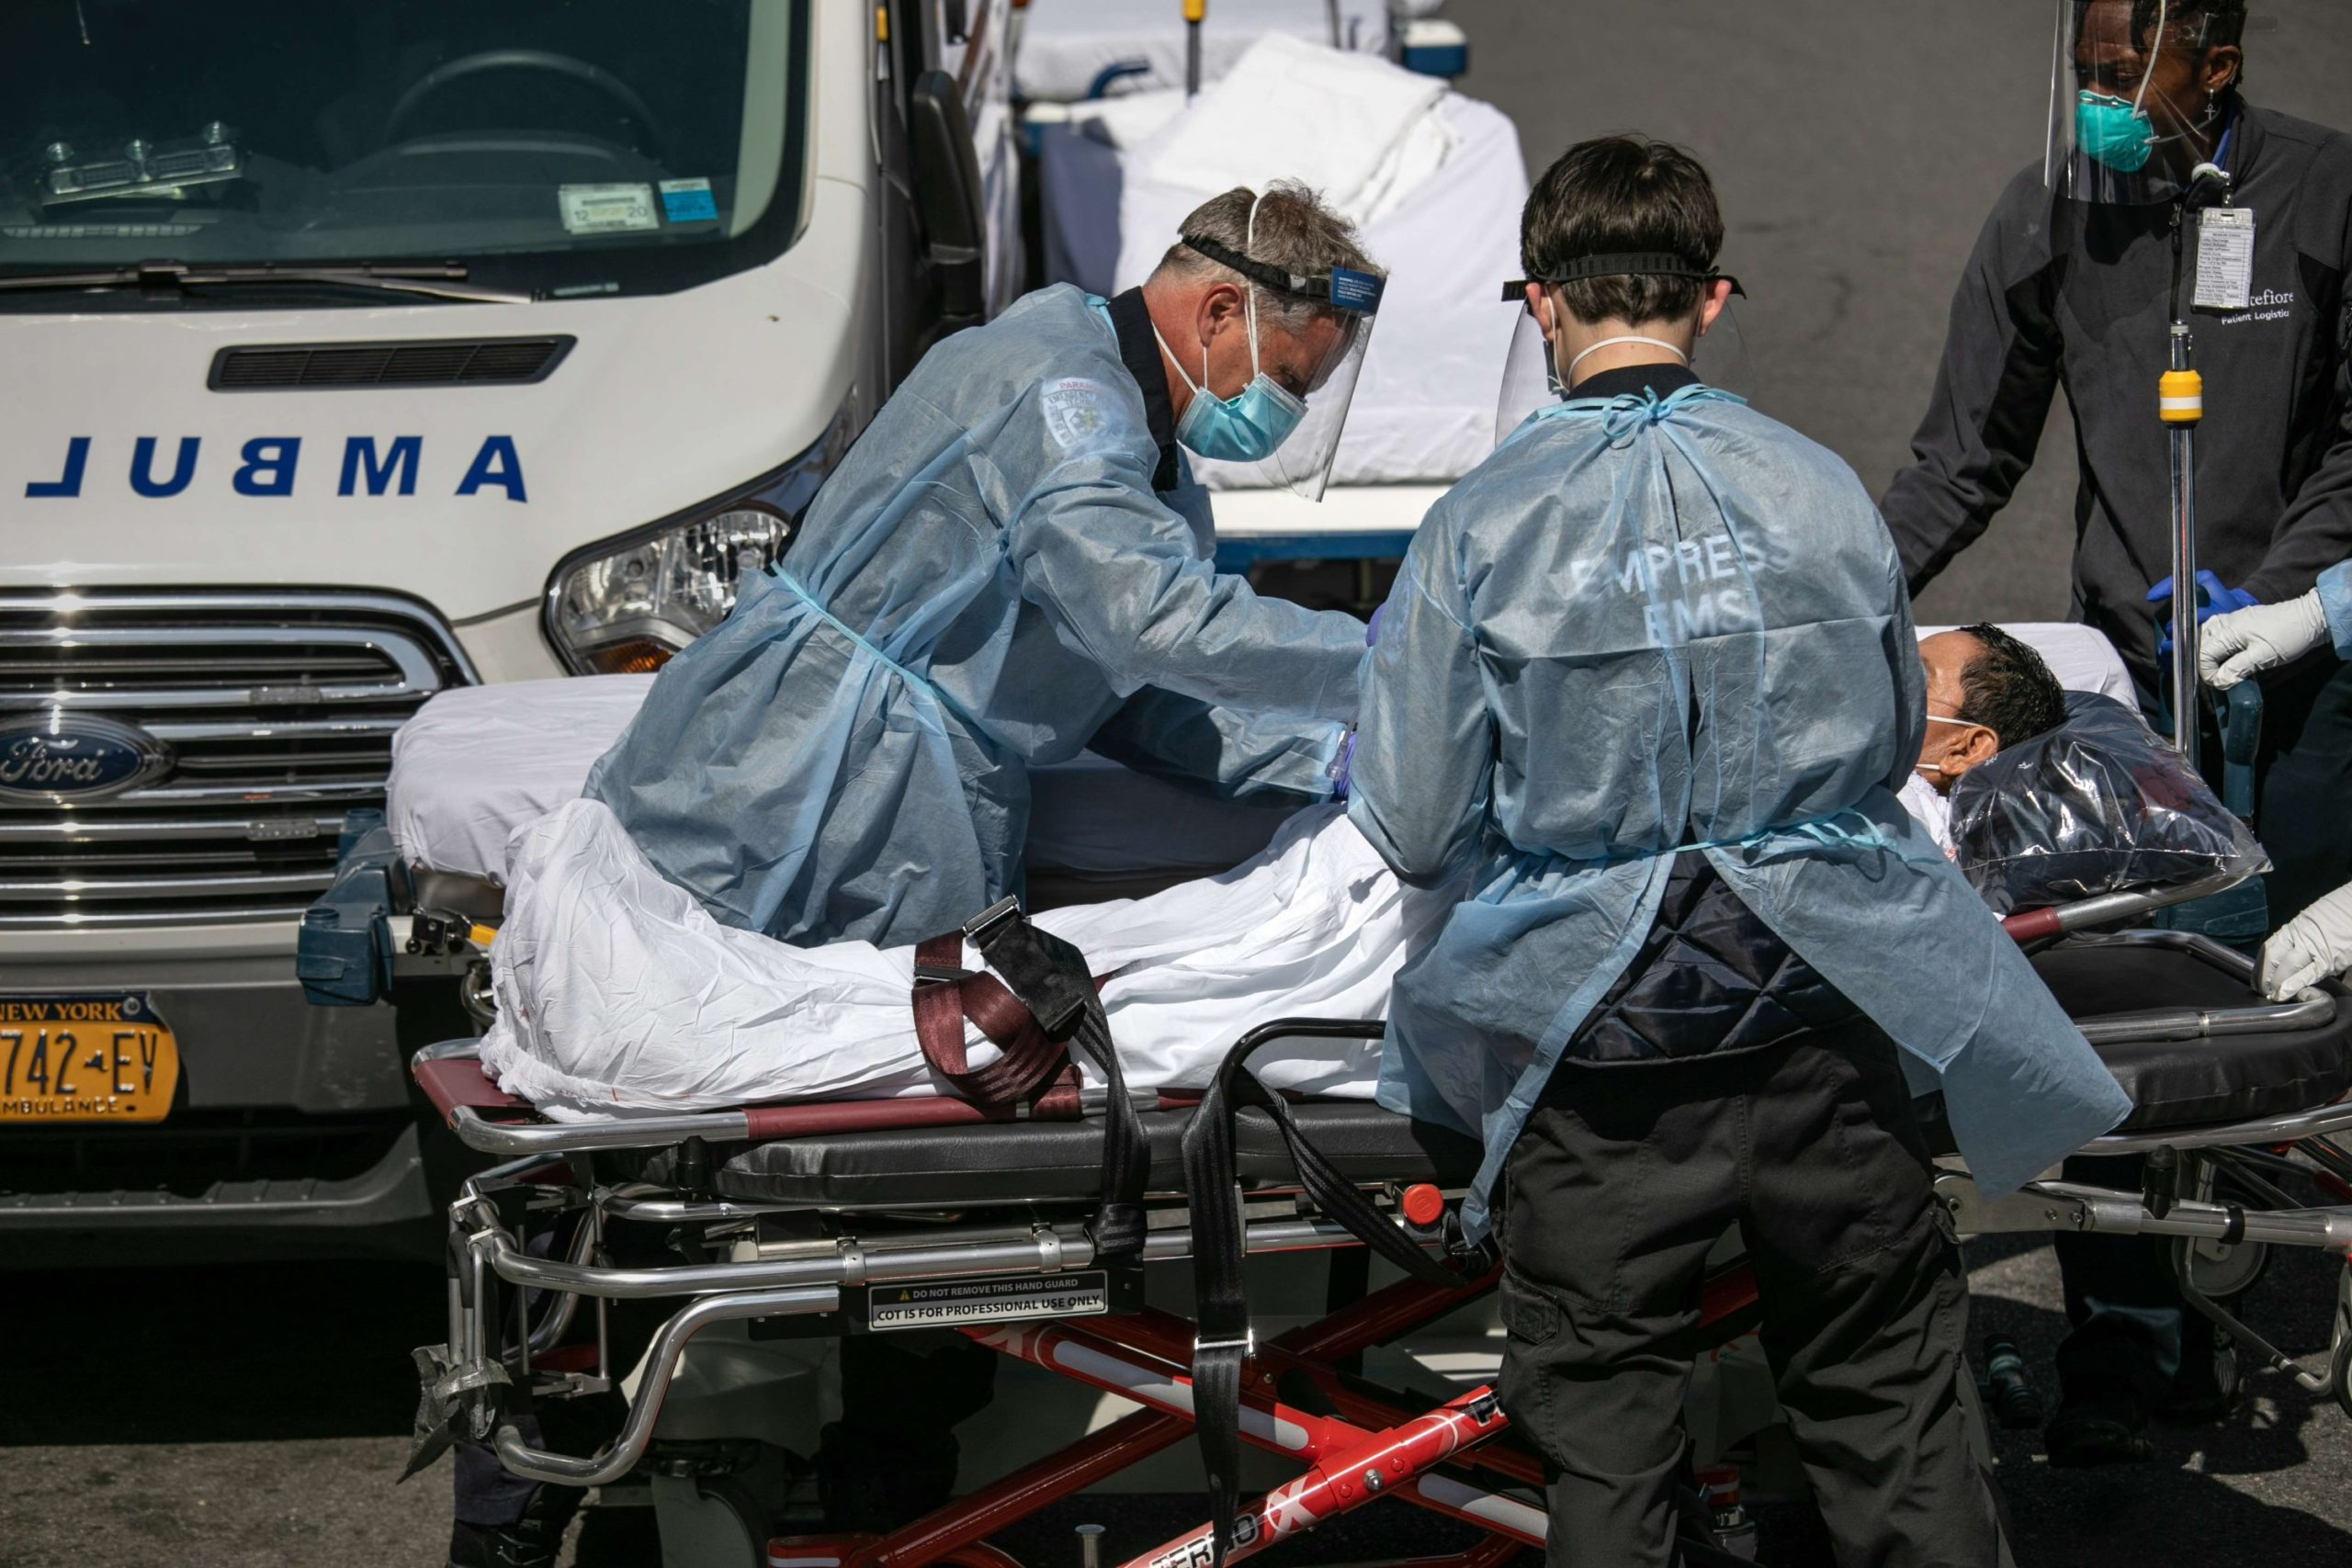 Medics and hospital workers tend to a COVID-19 patient outside the Montefiore Medical Center Moses Campus in the Bronx, New York City.